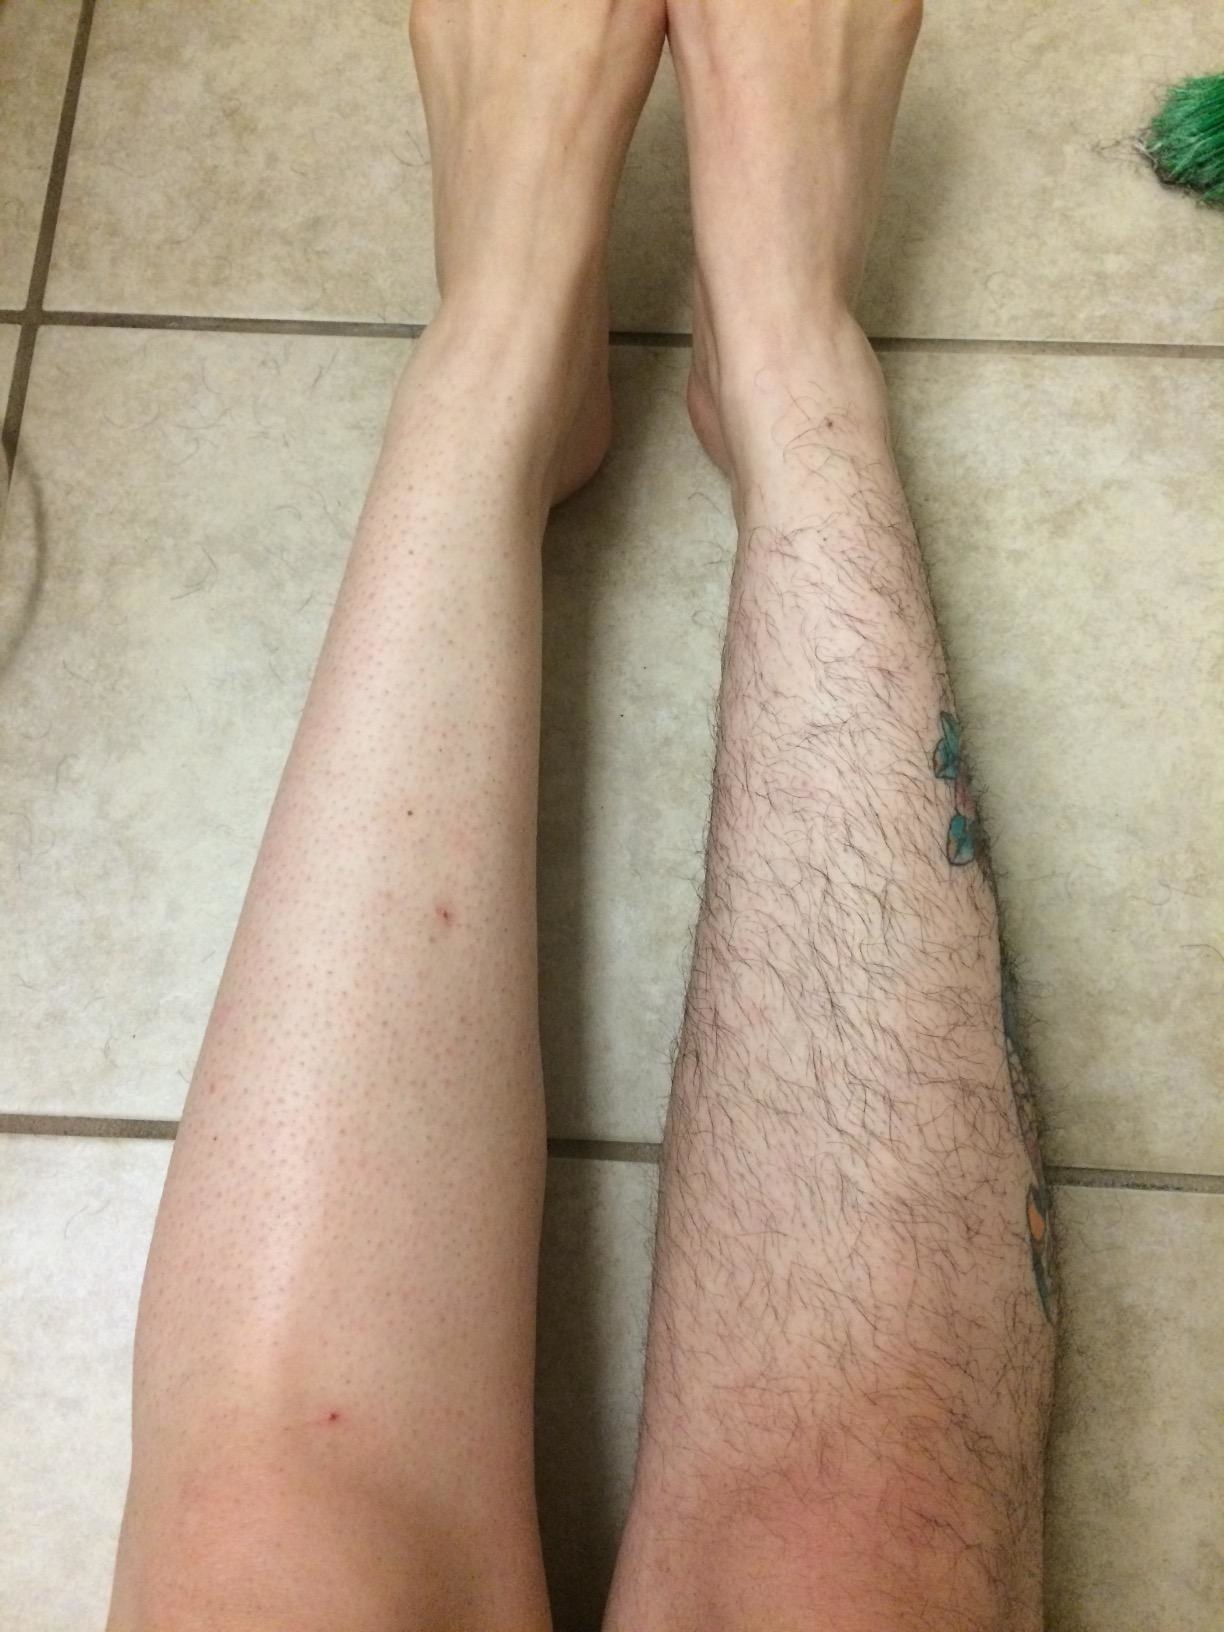 Reviewer comparing their smooth epilated legs to their fuzzy non-epilated leg